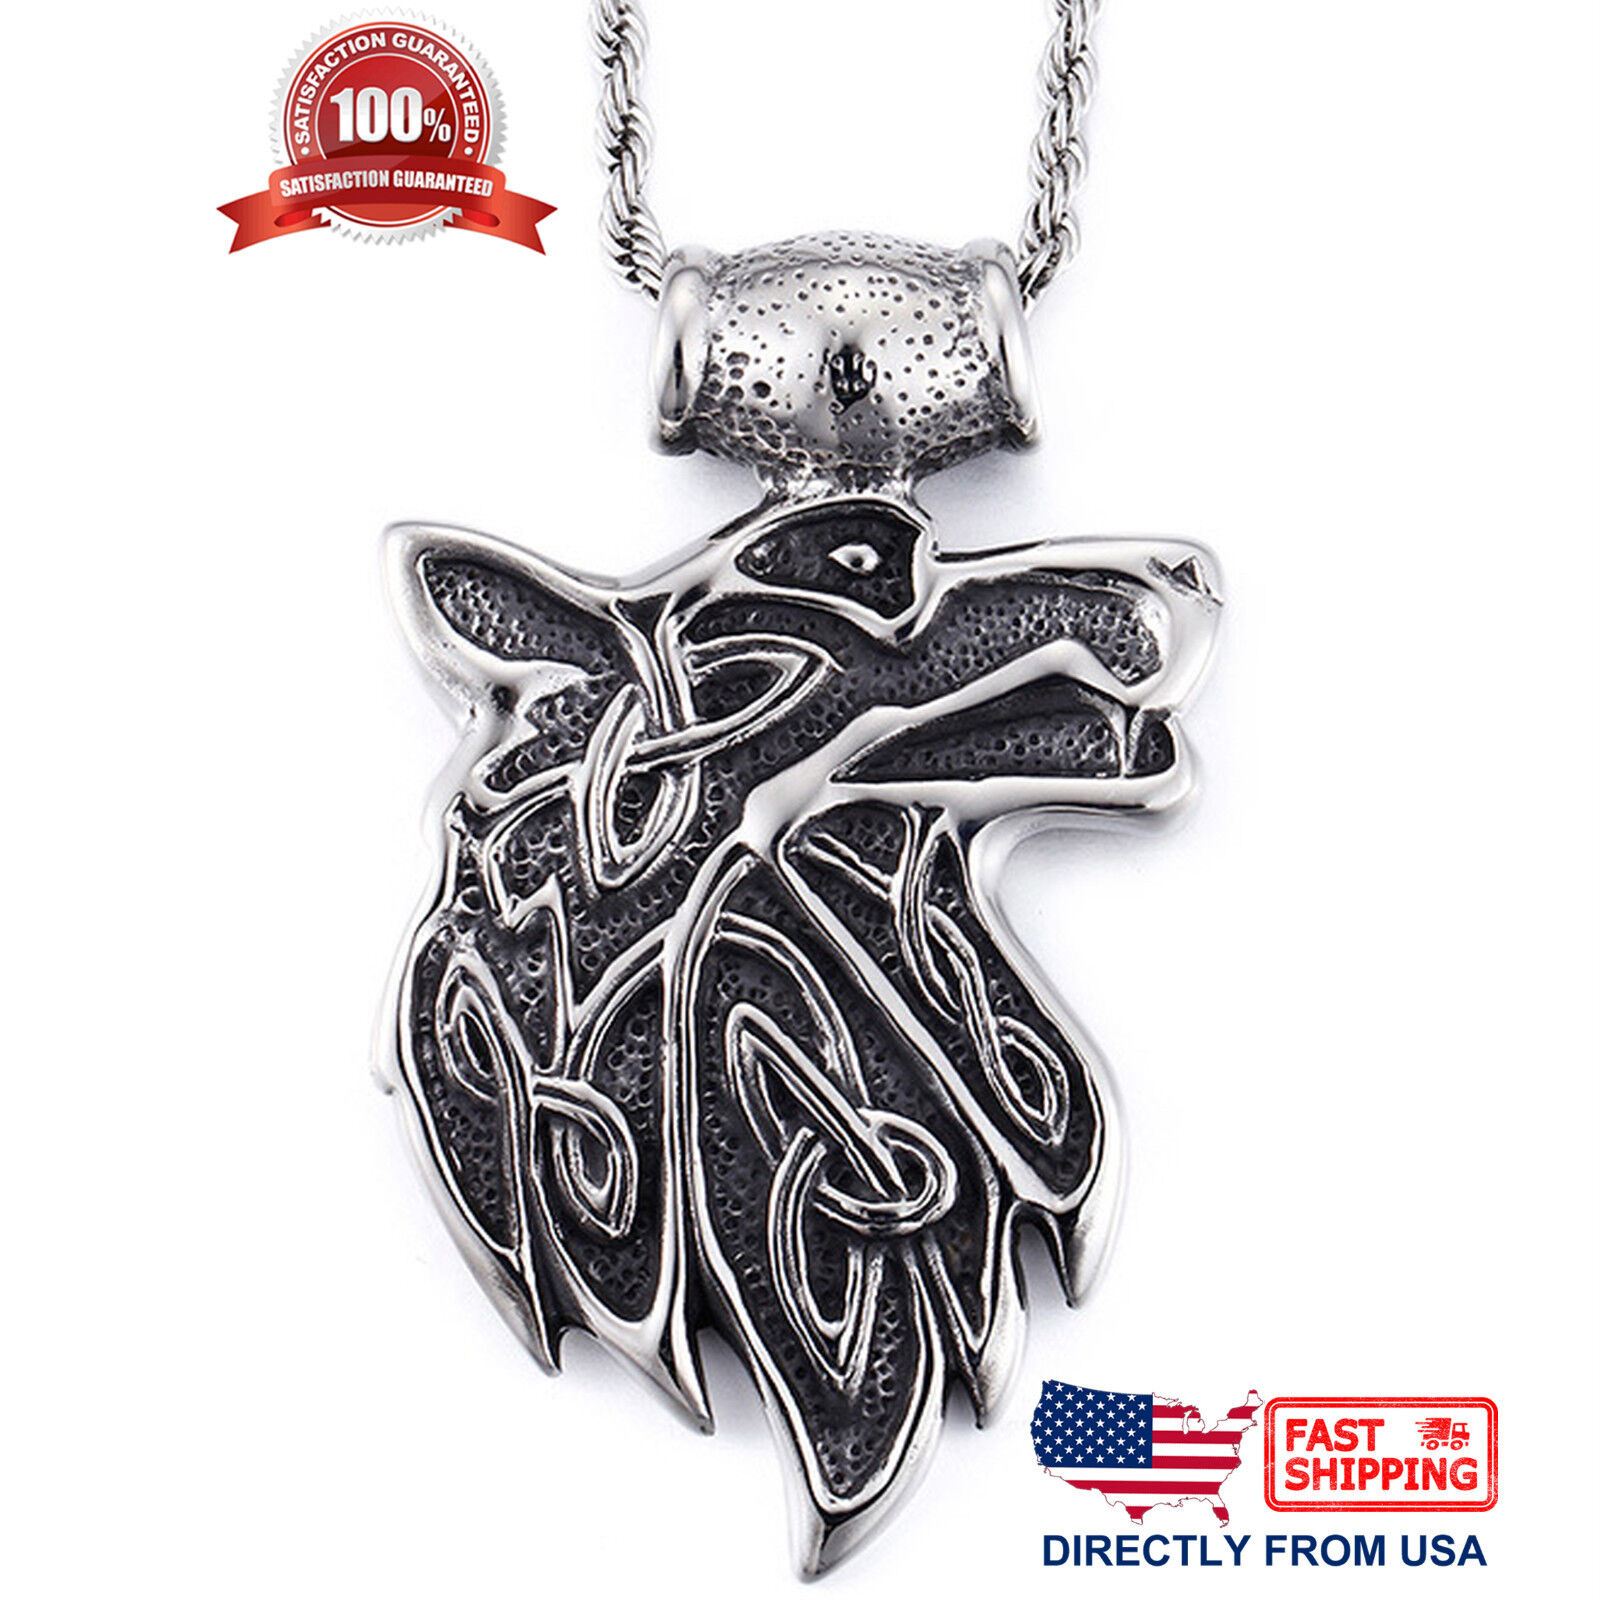 Mens Biker Jewelry, Large and Heavy Stainless Steel Tribal Wolf Pendant Necklace Chains, Necklaces & Pendants